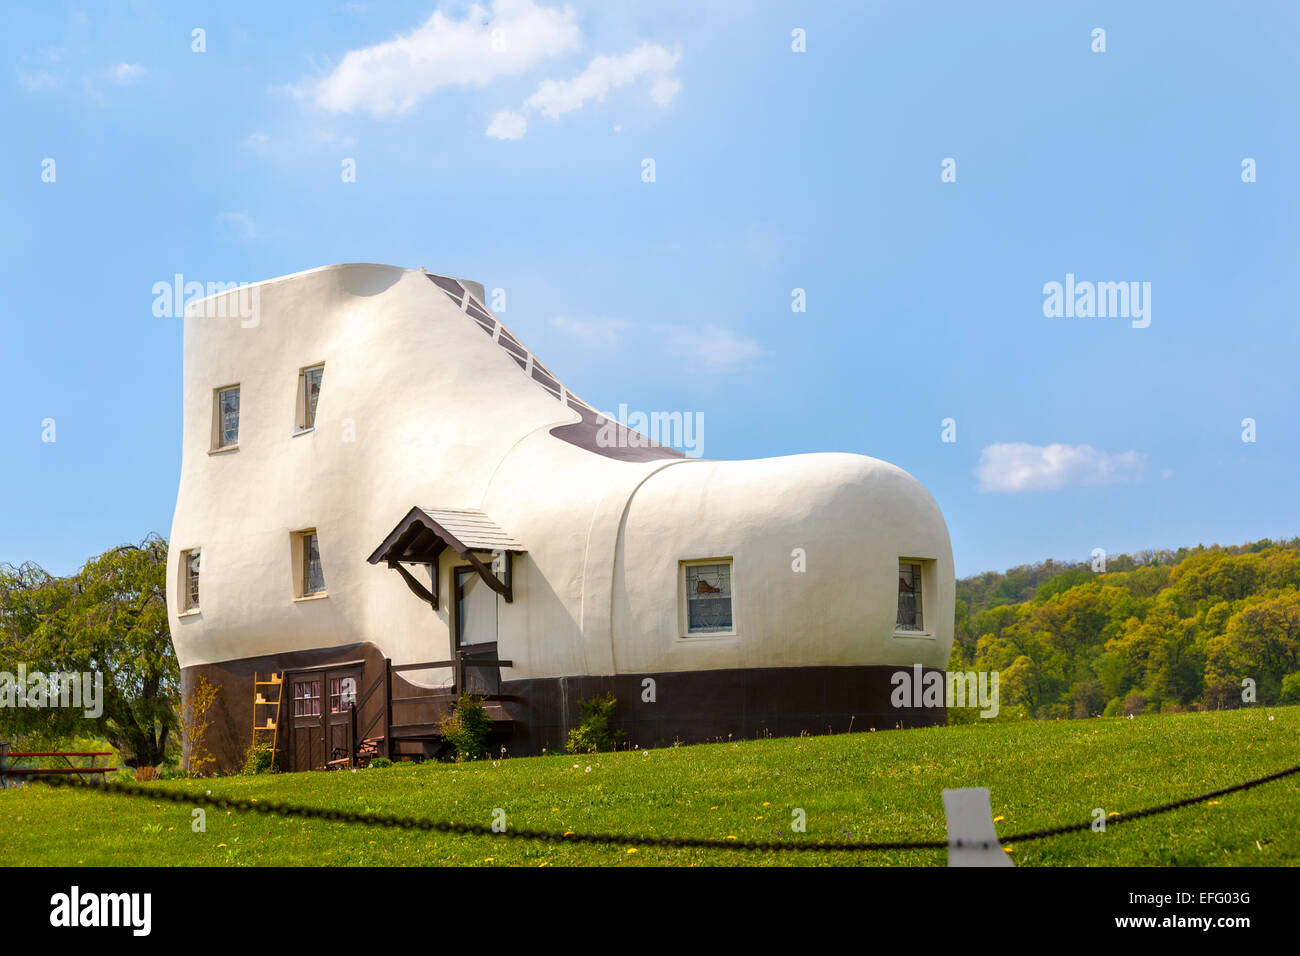 Haines Shoe House in Hellam Pennsylvania. Roadside attraction novelty building modeled after a work boot. - Stock Image